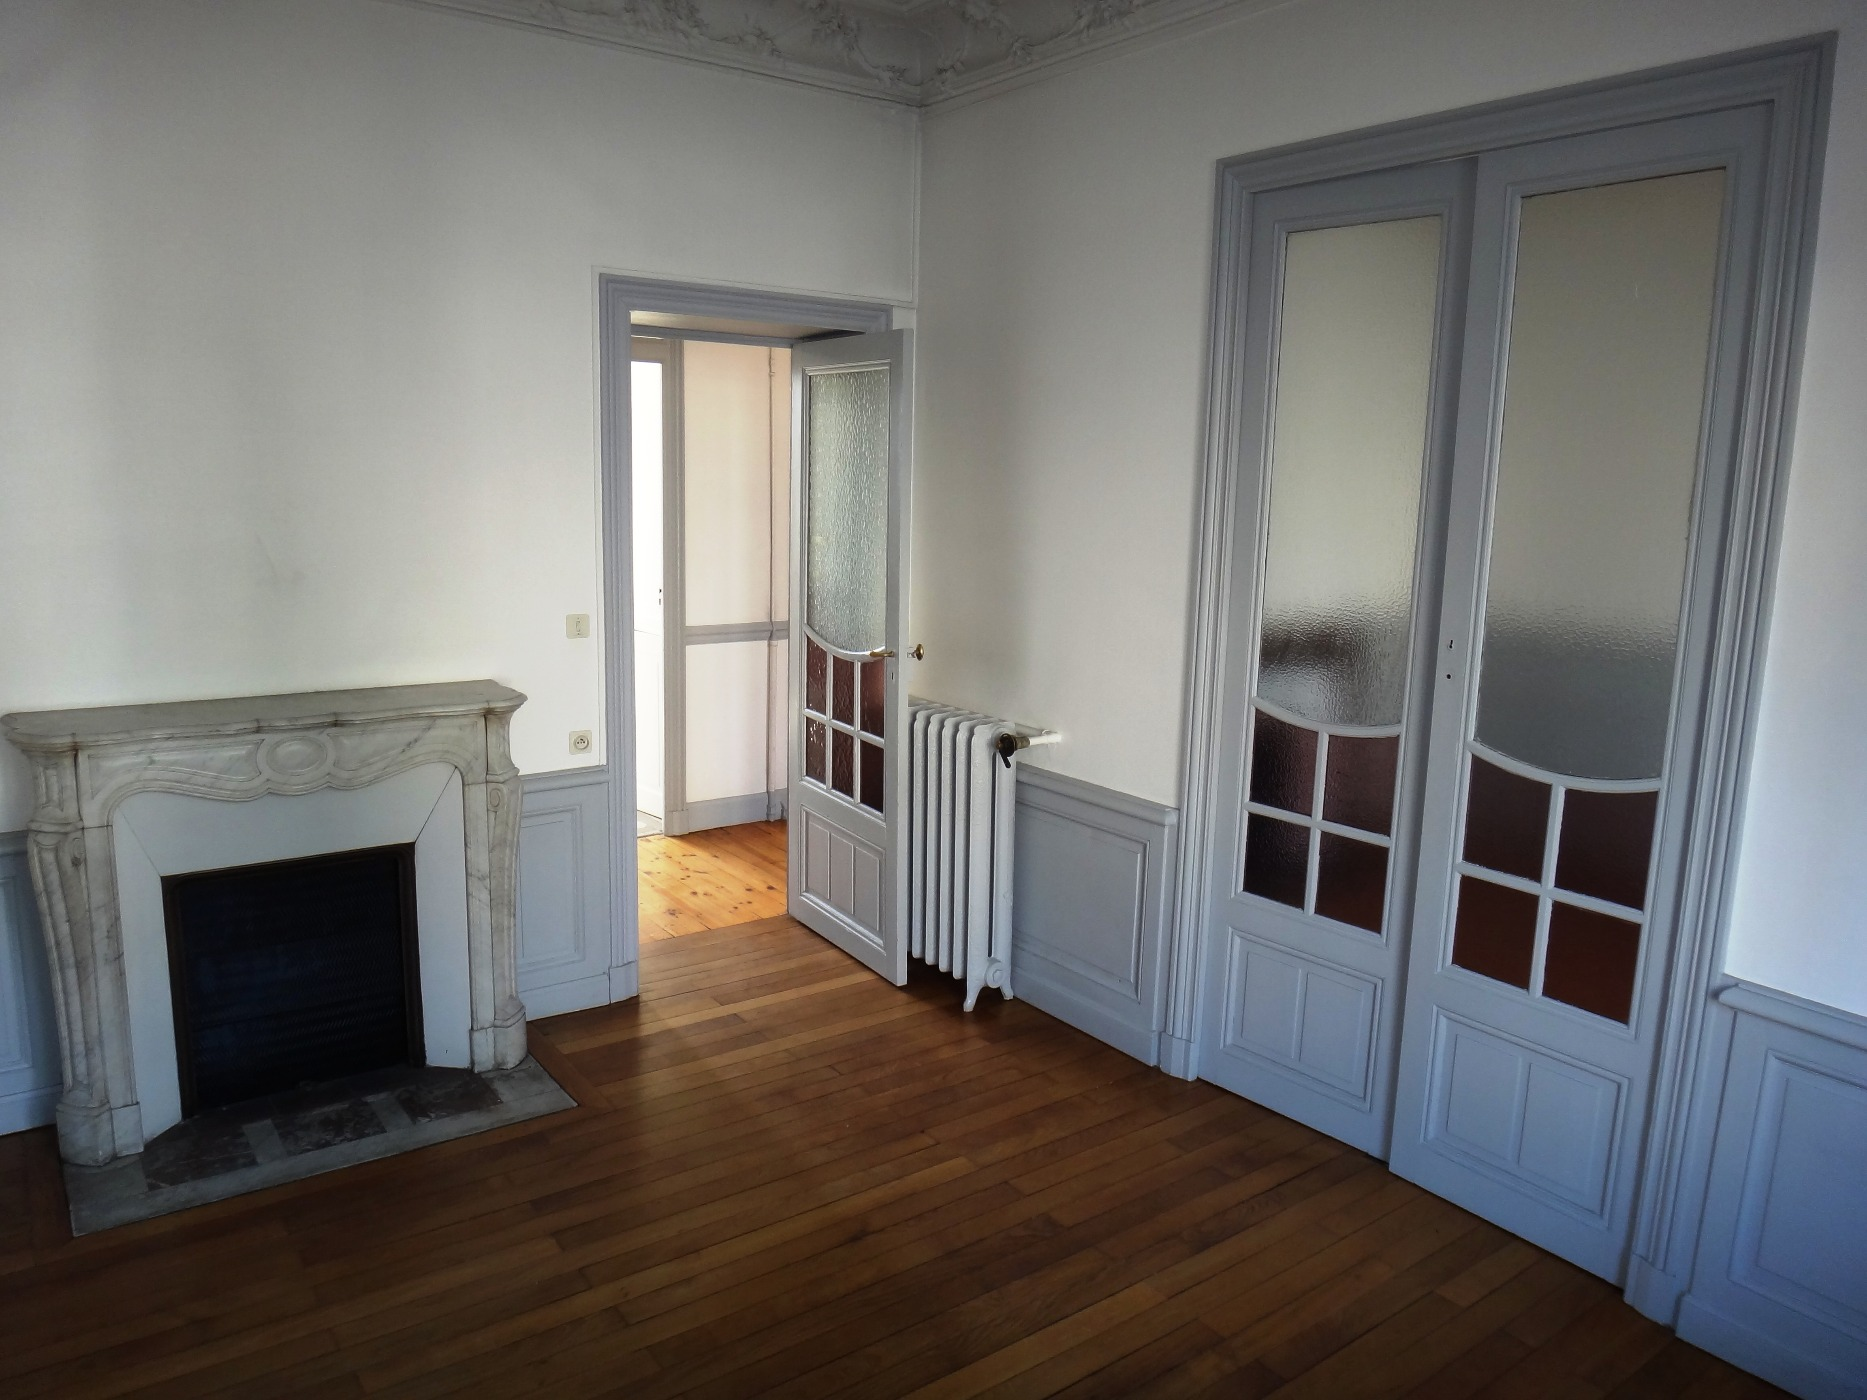 Vente immobilier professionnel location immobilier - Cabinet ophtalmologie clermont ferrand ...